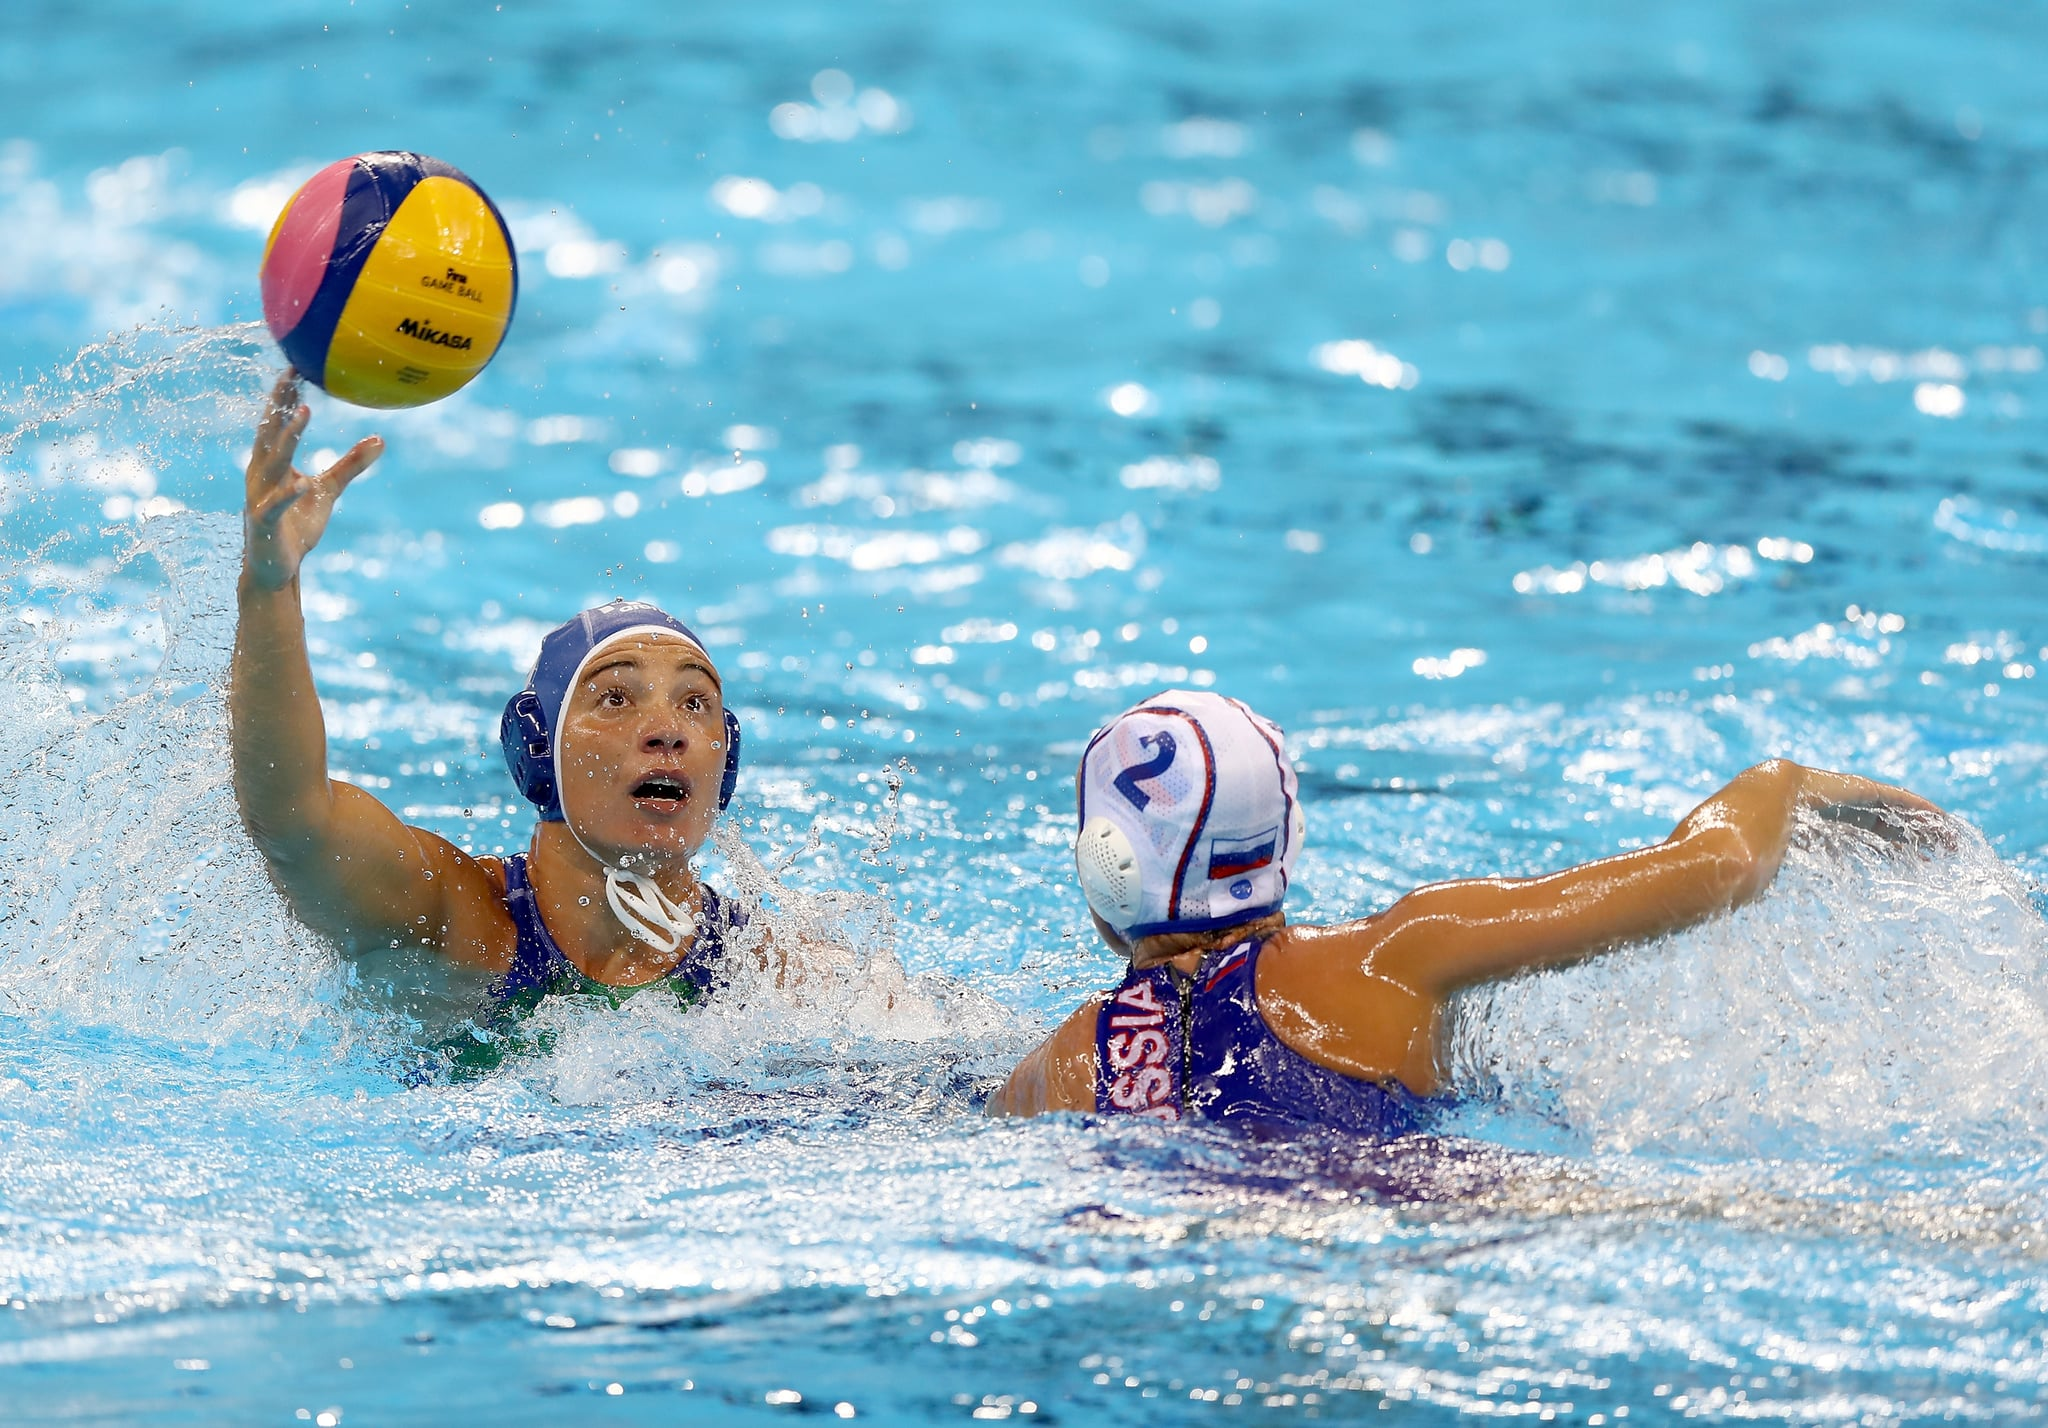 RIO DE JANEIRO, BRAZIL - AUGUST 17:  Roberta Bianconi #8 of Italy passes the ball as Ekaterina Lisunova #2 of Russia defends during the Women's Water Polo at Olympic Aquatics Stadium on August 17, 2016 in Rio de Janeiro, Brazil.  (Photo by Elsa/Getty Images)